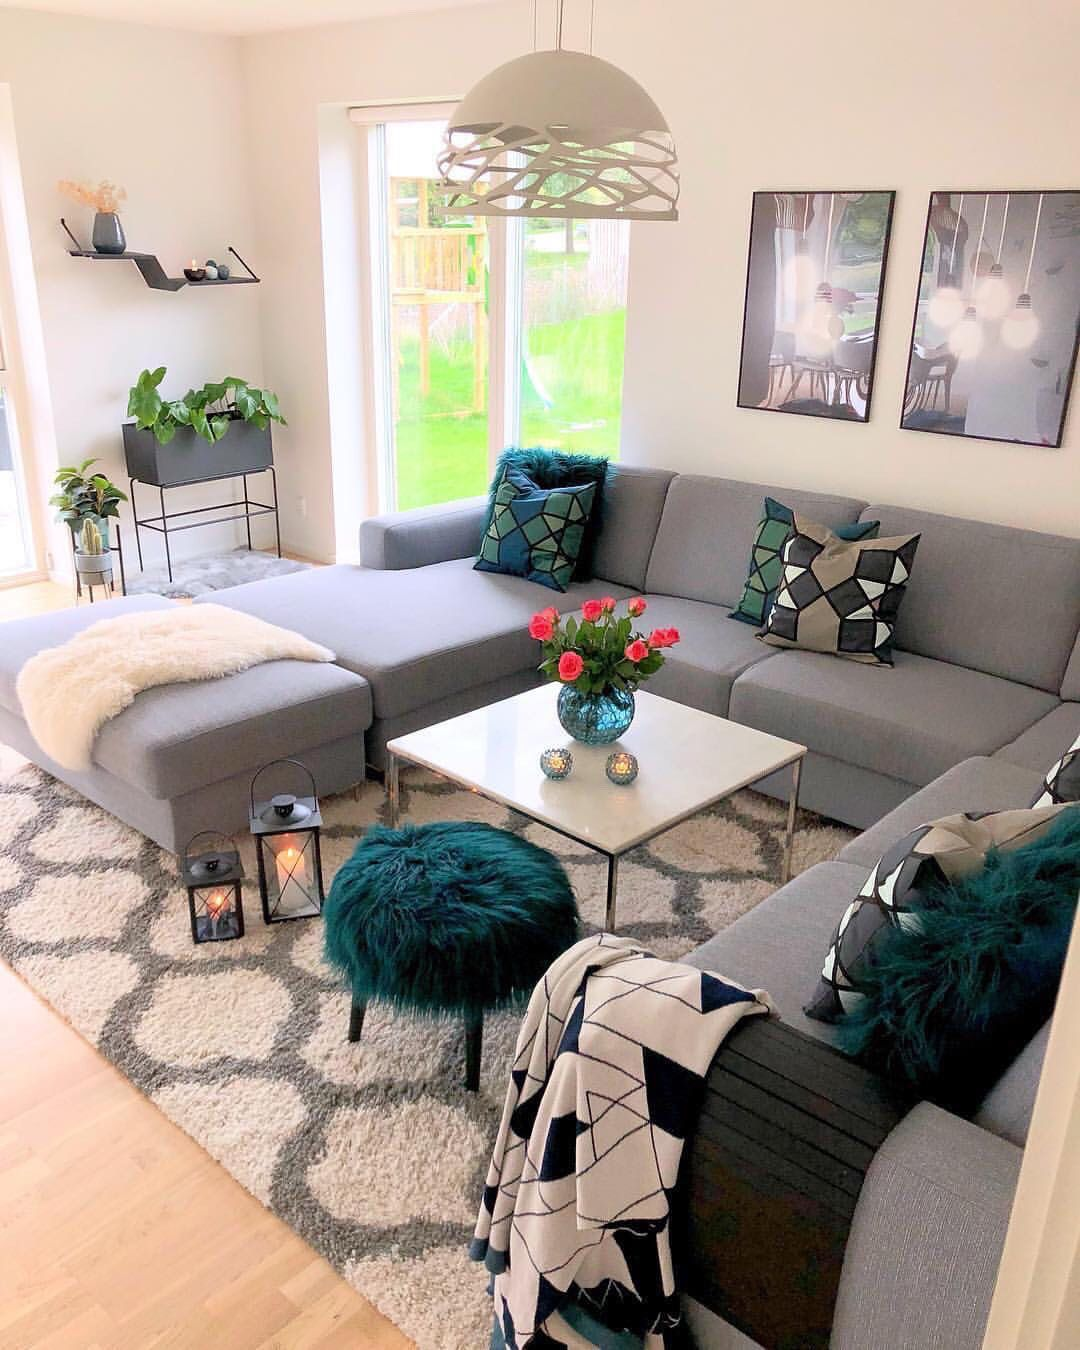 Beautiful decor diy interior design living room designs also pin by jennifer burke on add some color in rh pinterest